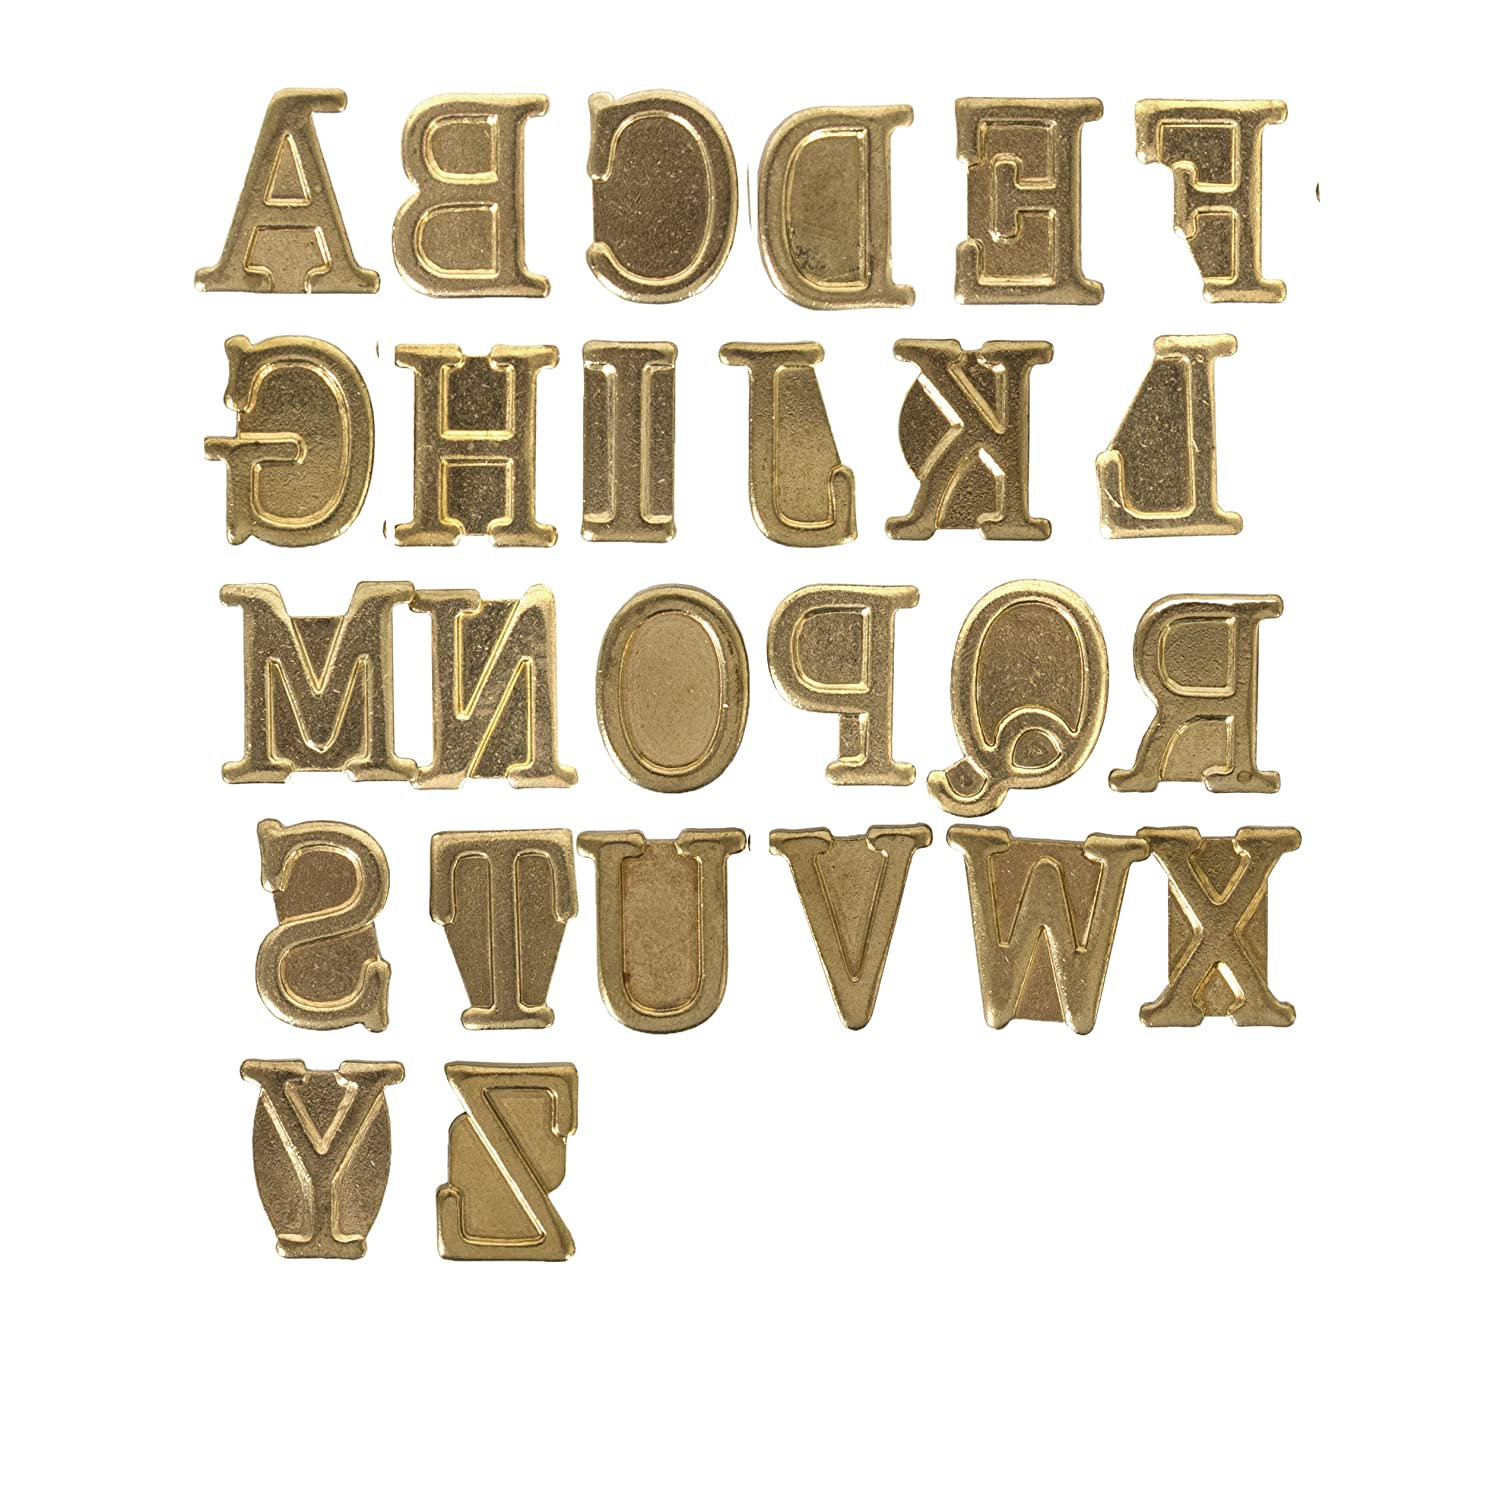 Walnut Hollow Mini Hot Stamps Lowercase Alphabet Branding & Personalization Set for Wood, Leather & Other Surfaces 41347